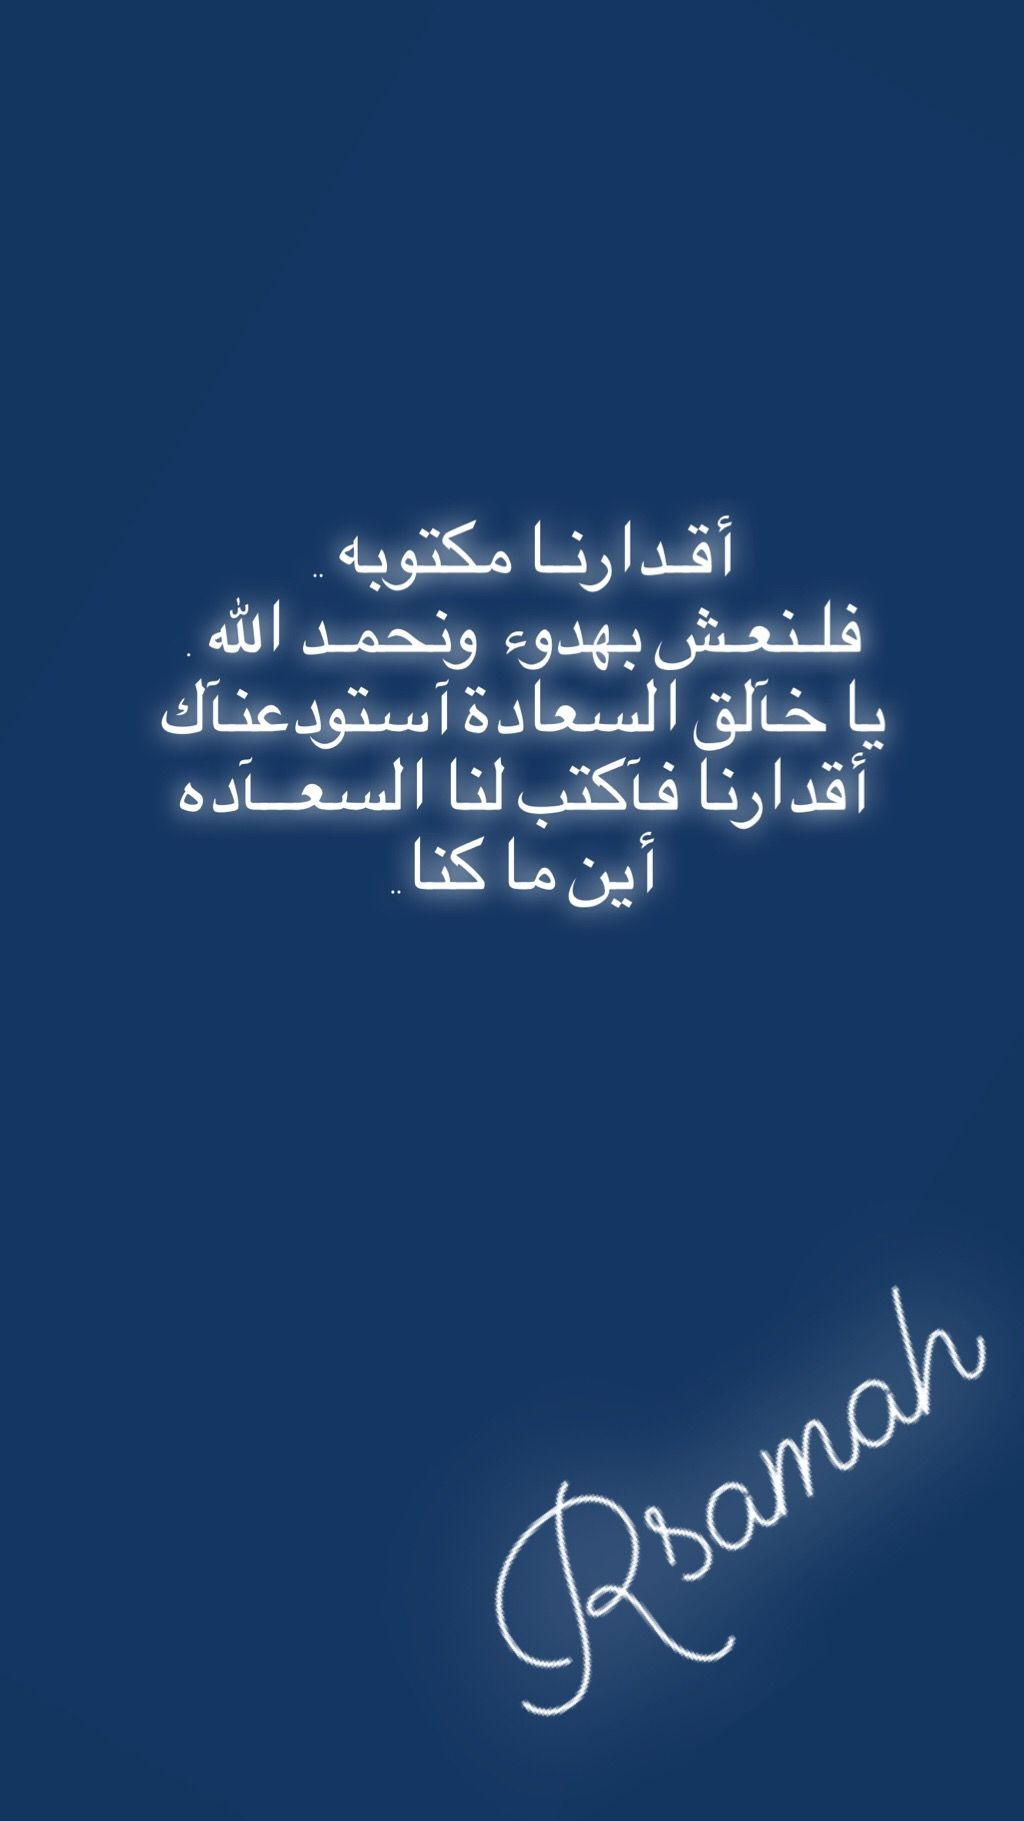 Pin By Rsamah On My Snap Quotes Arabic Quotes Words